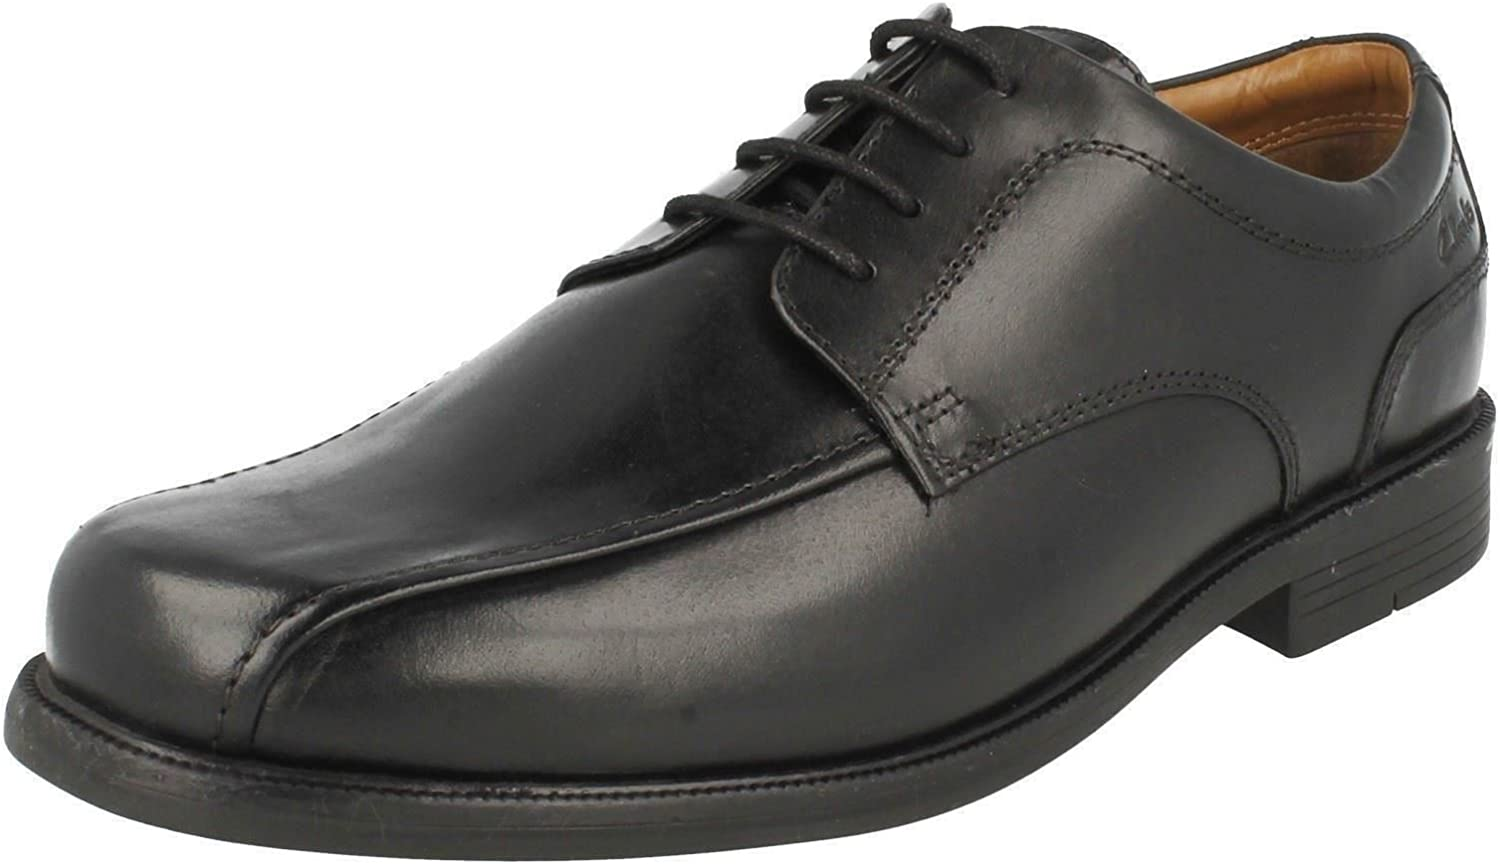 Clarks Men's Lace-Up Derby shoes Beeston Stride Black Leather